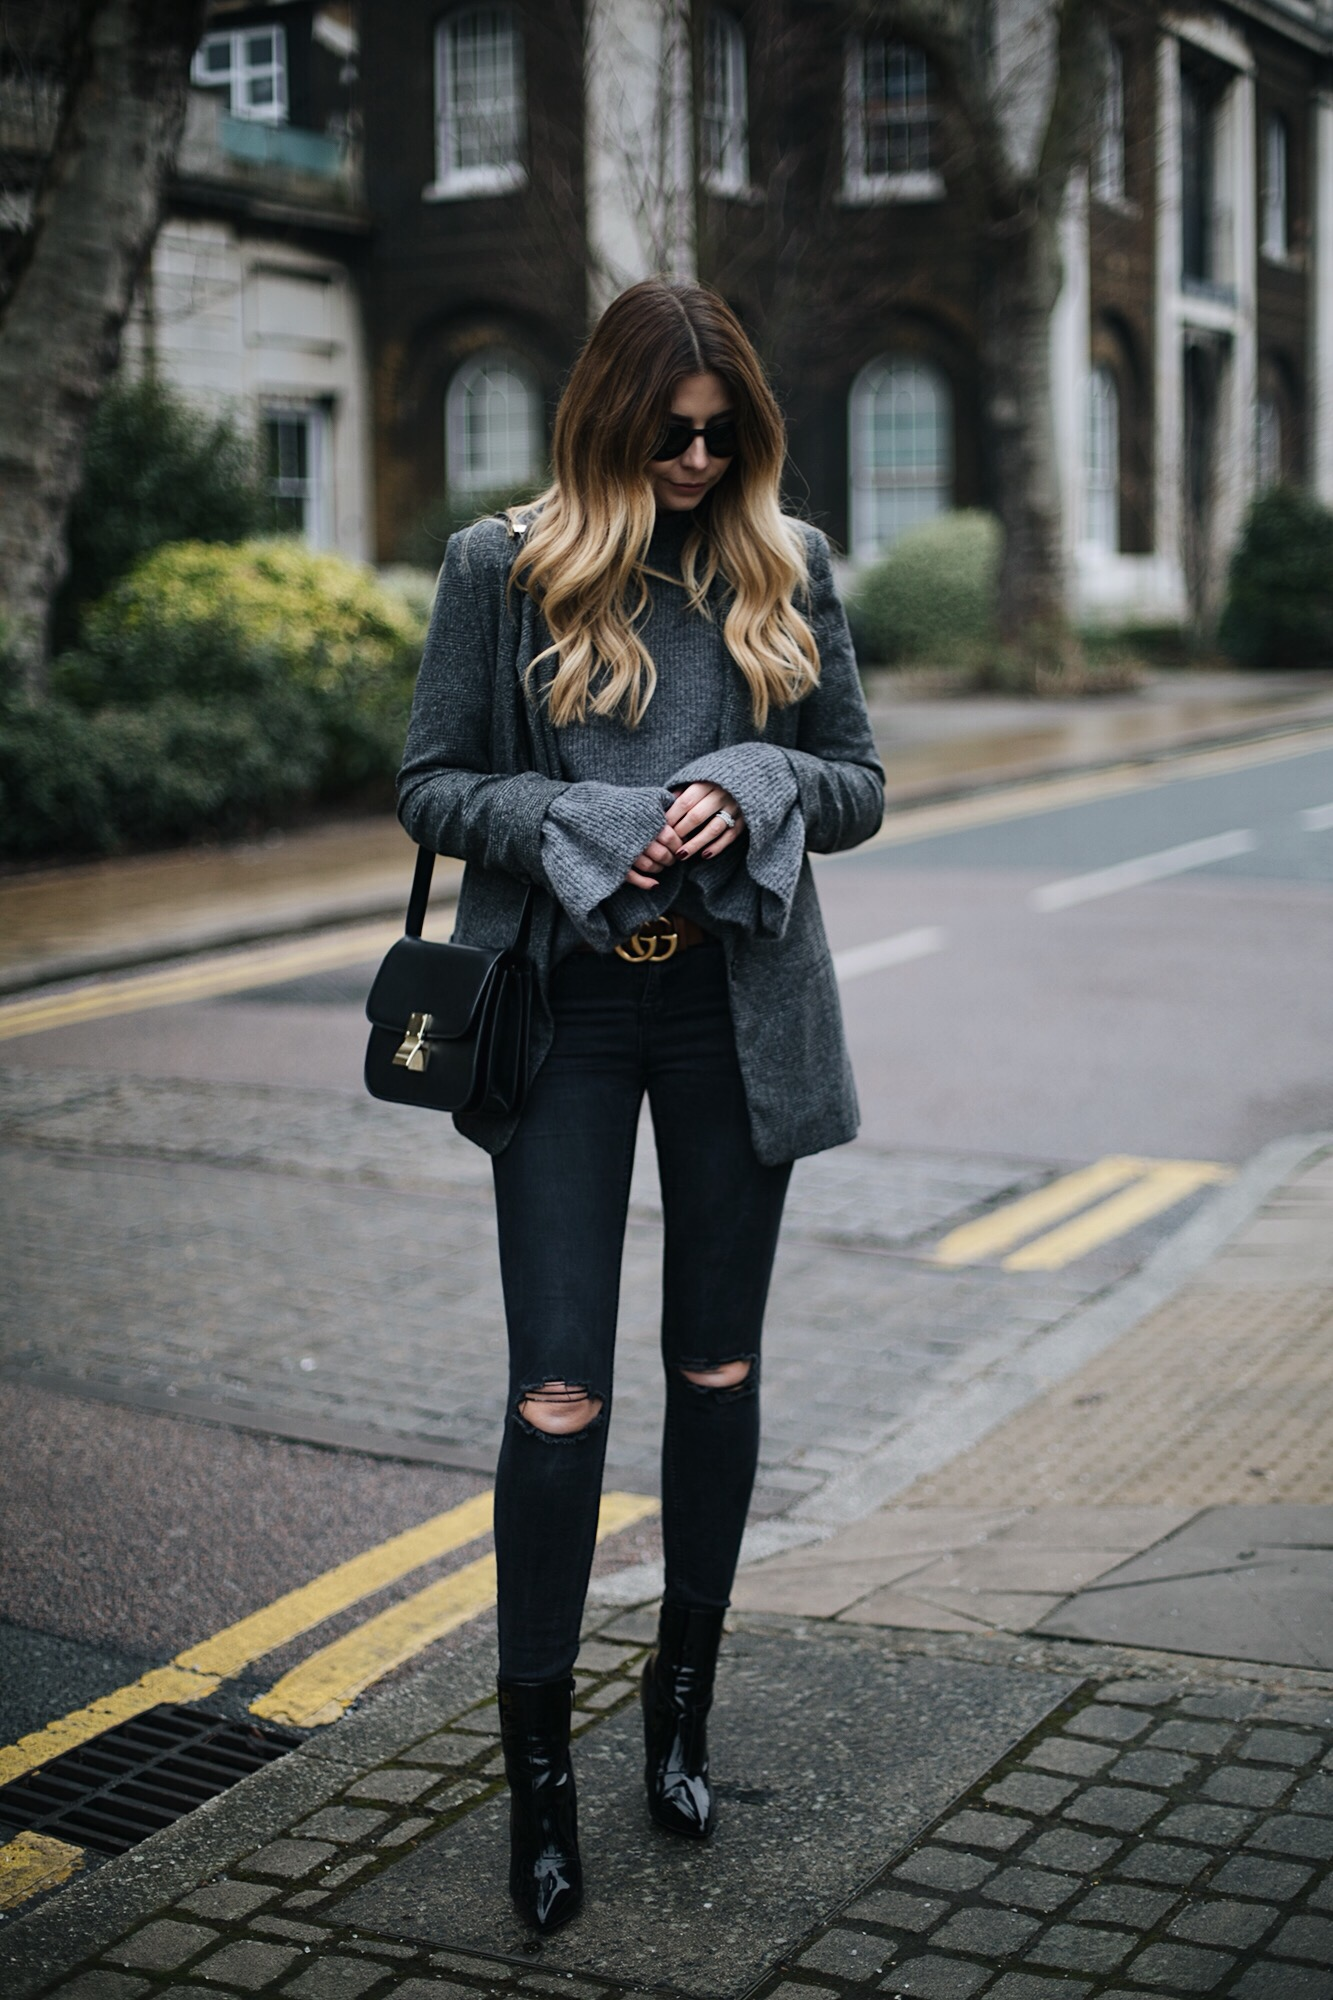 black skinny jeans, patent vinyl ankle boots, grey check blazer, belle sleeve jumper, Celine box bag, Gucci GG marmot belt, winter outfit